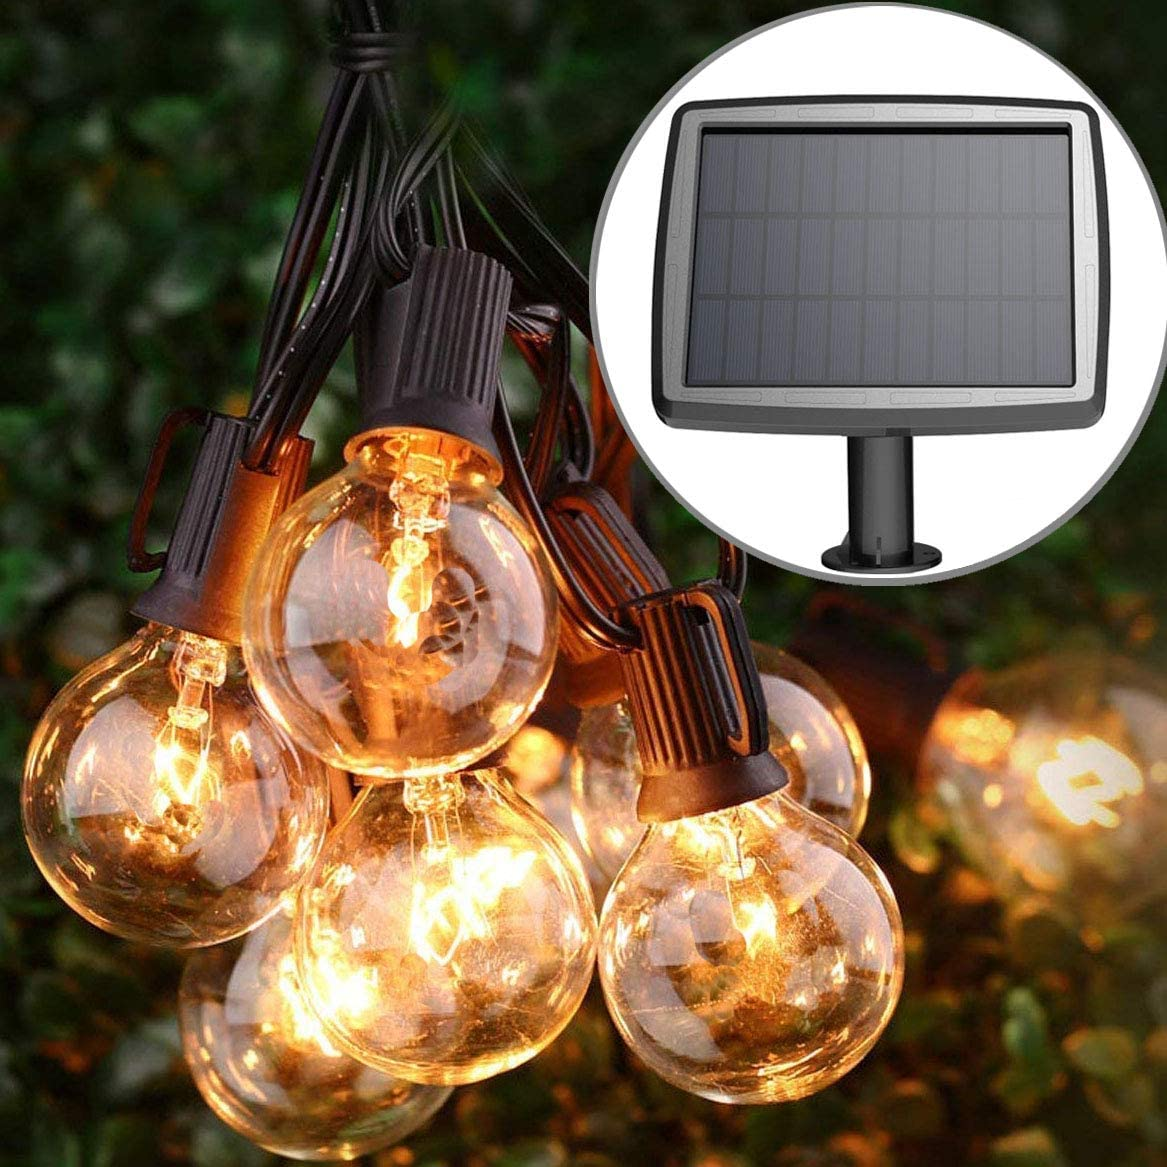 PERFECTDAY Solar String Lights, Shatterproof LED Solar String Light Outdoor G40 Umbrella Lights with 25 Bulbs - 27 Ft Patio Waterproof Lights